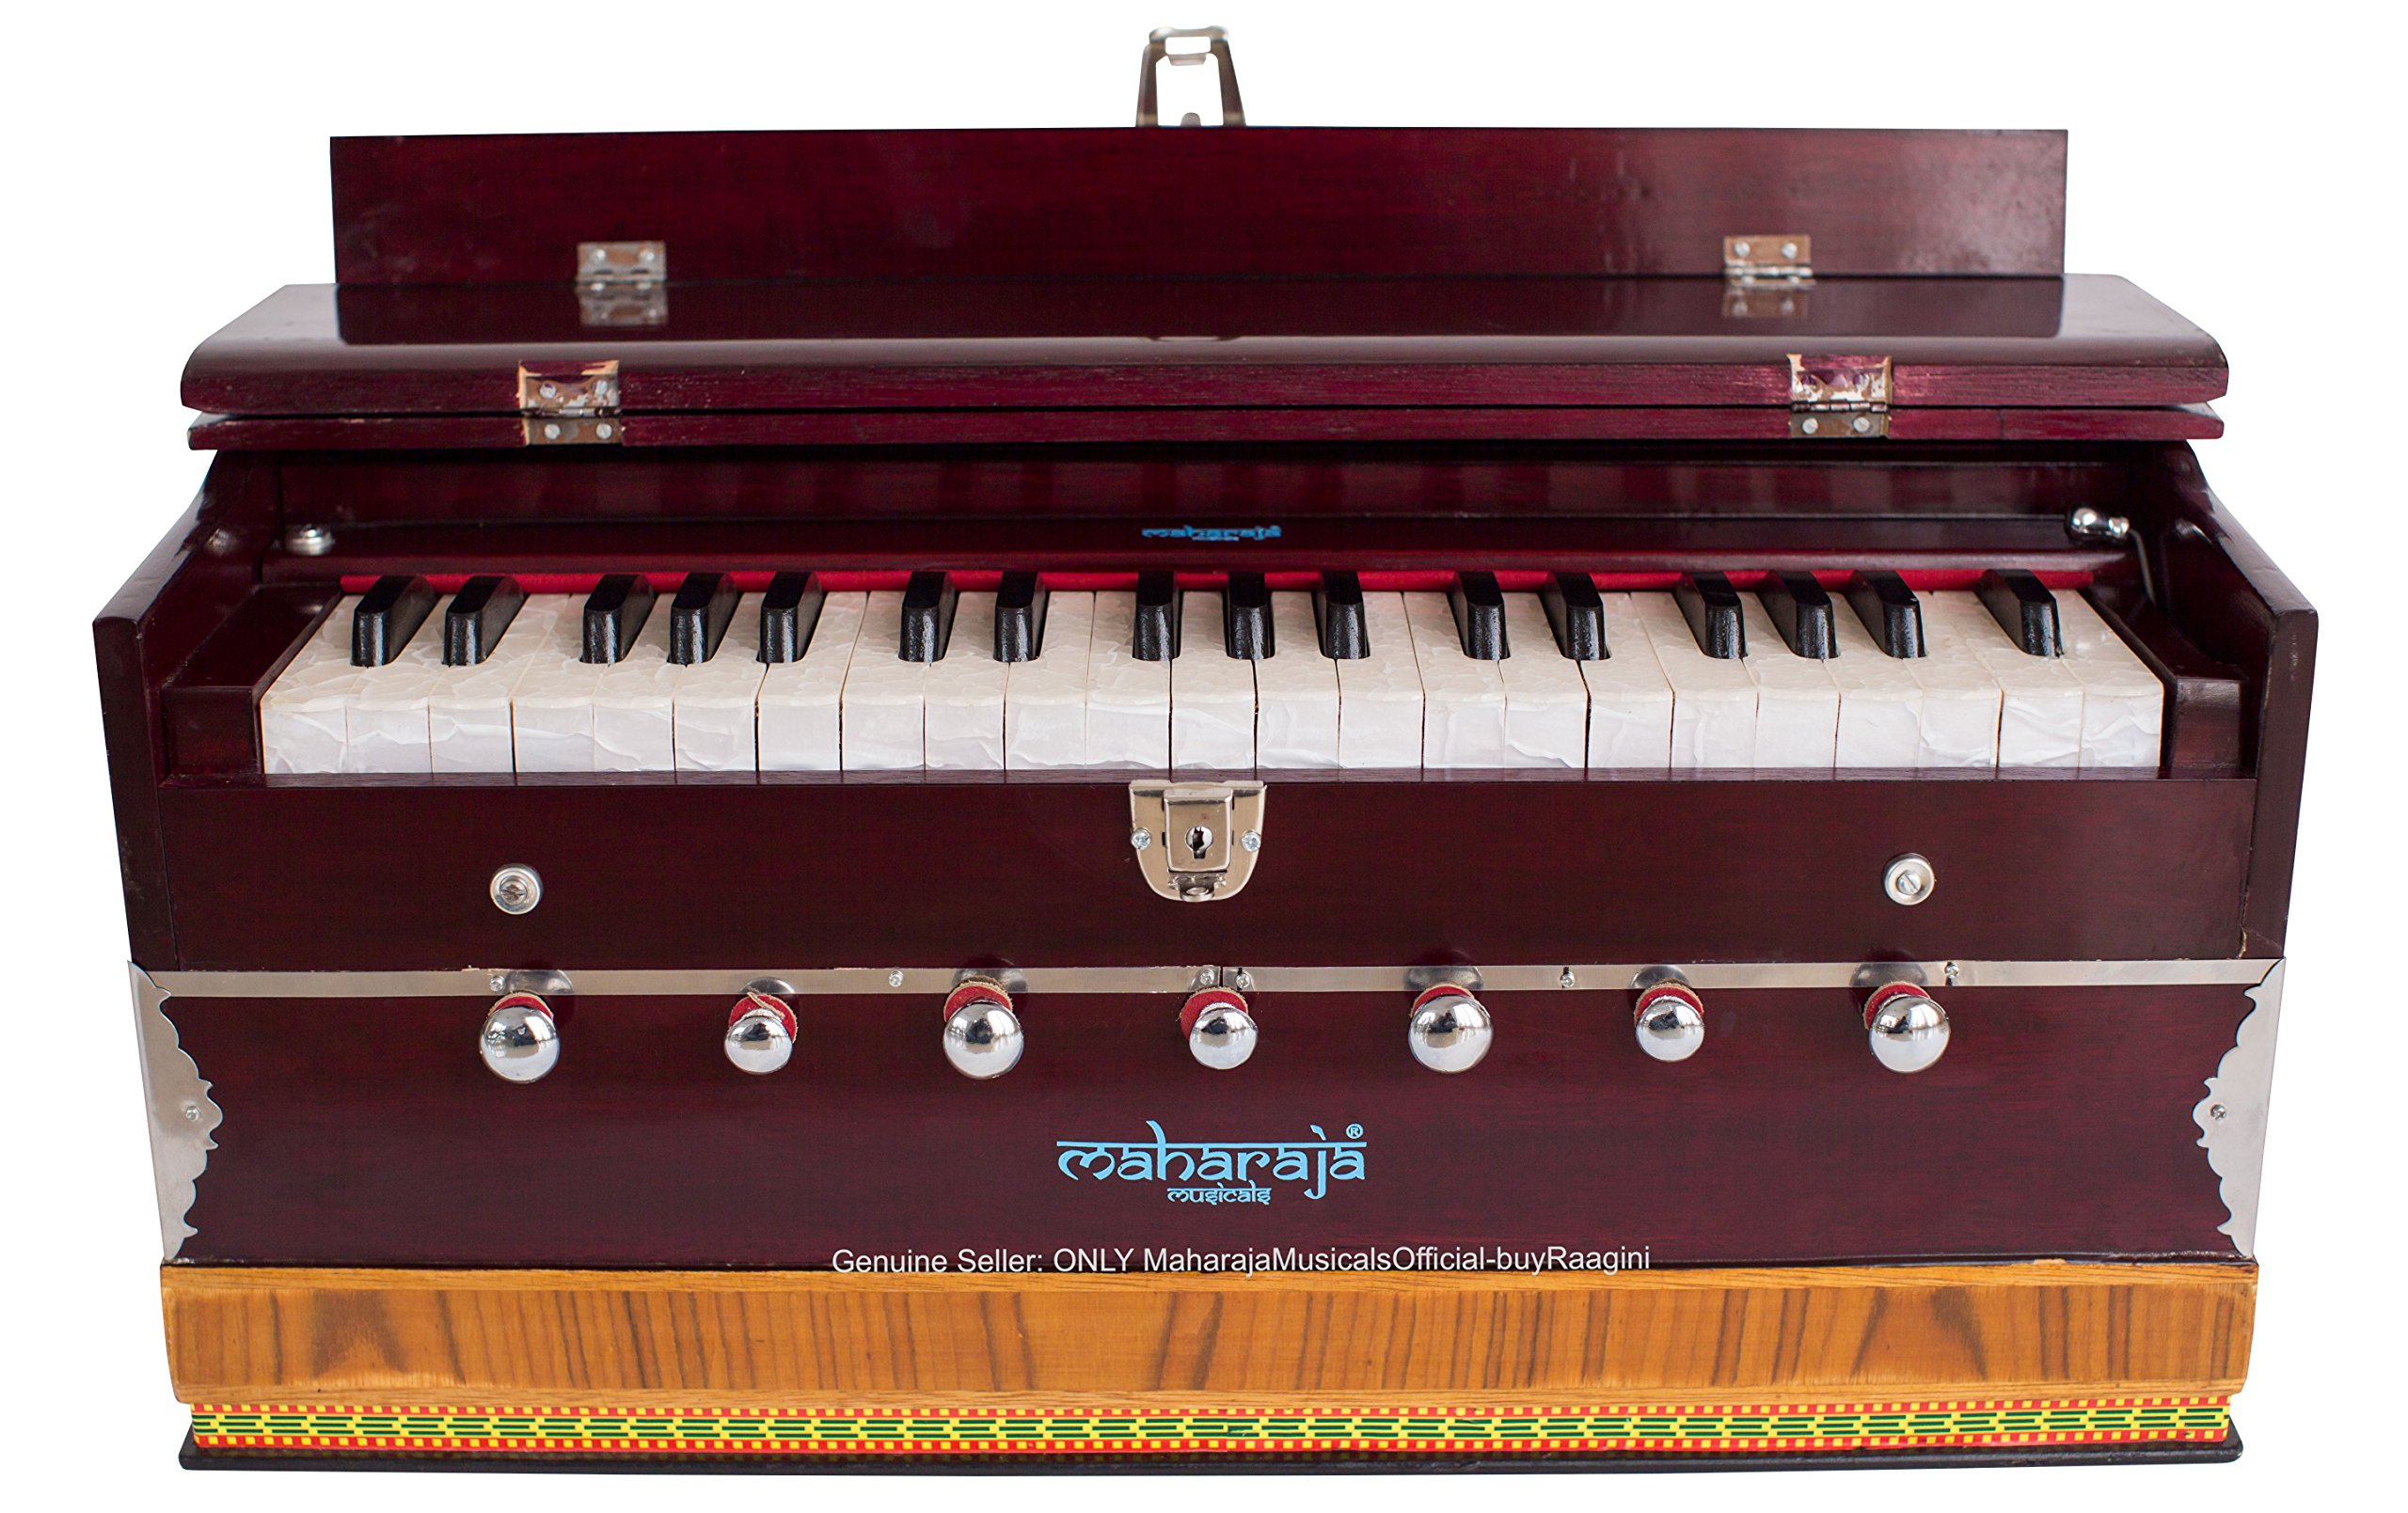 MAHARAJA Harmonium 7 Stopper - 39 Keys - Comes with Book & Bag - Tuned to A440 - Mahogany Color (PDI-DB)